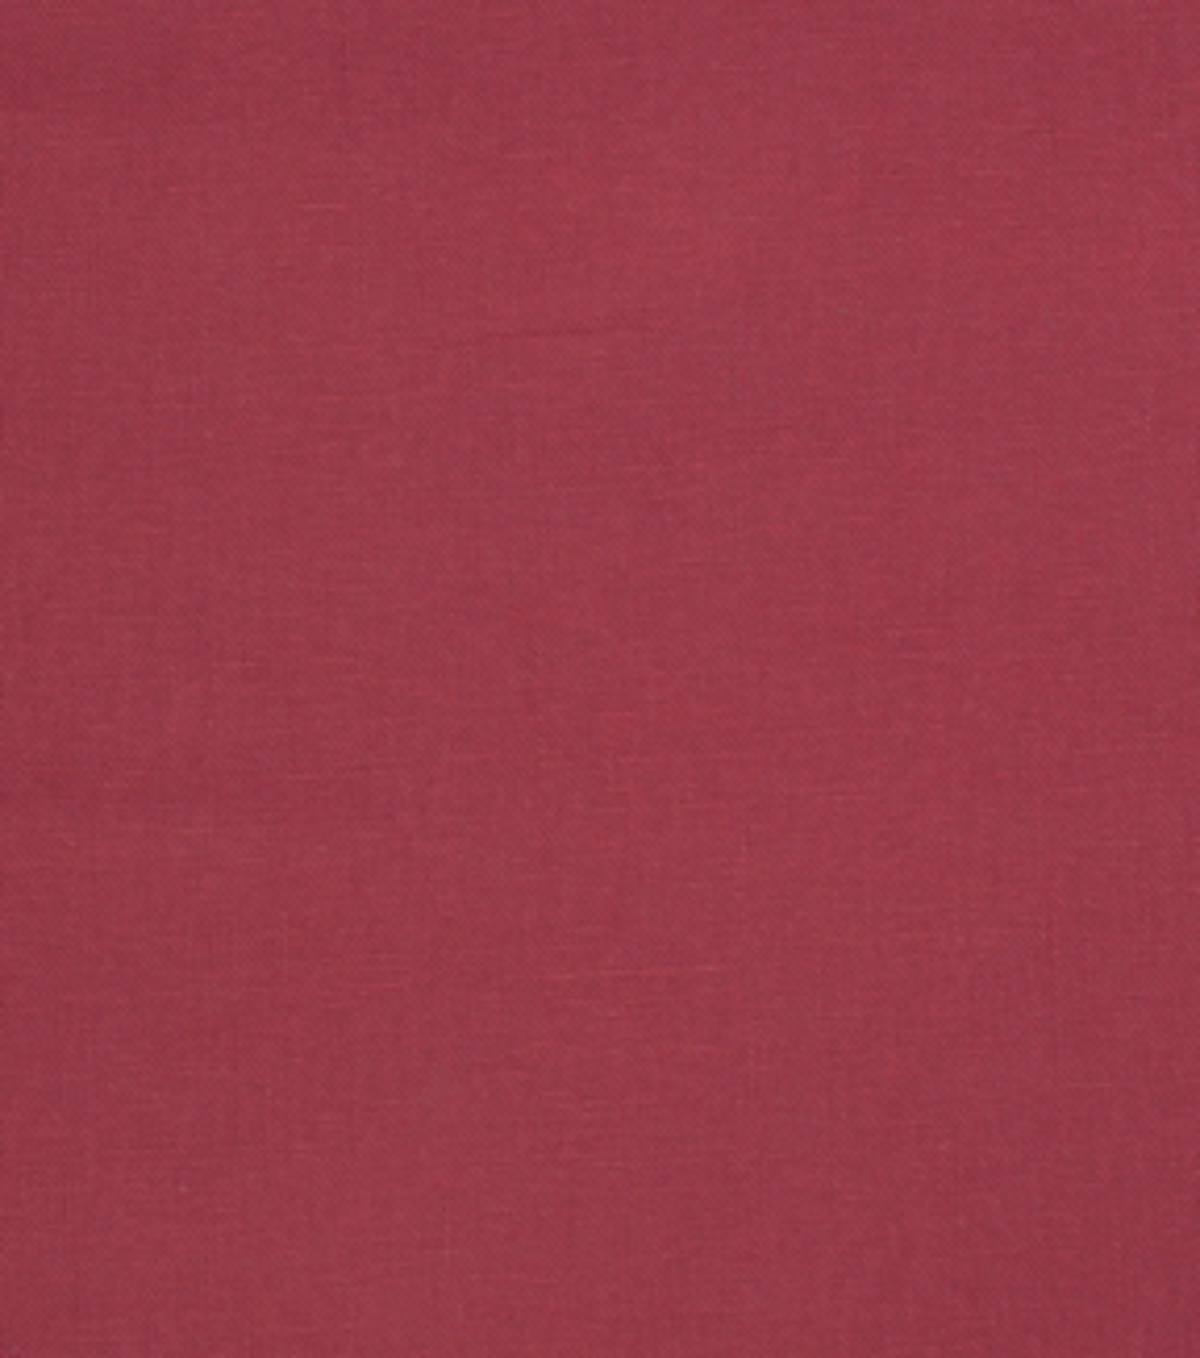 Home Decor 8\u0022x8\u0022 Fabric Swatch-Jaclyn Smith Jigsaw  Redbud